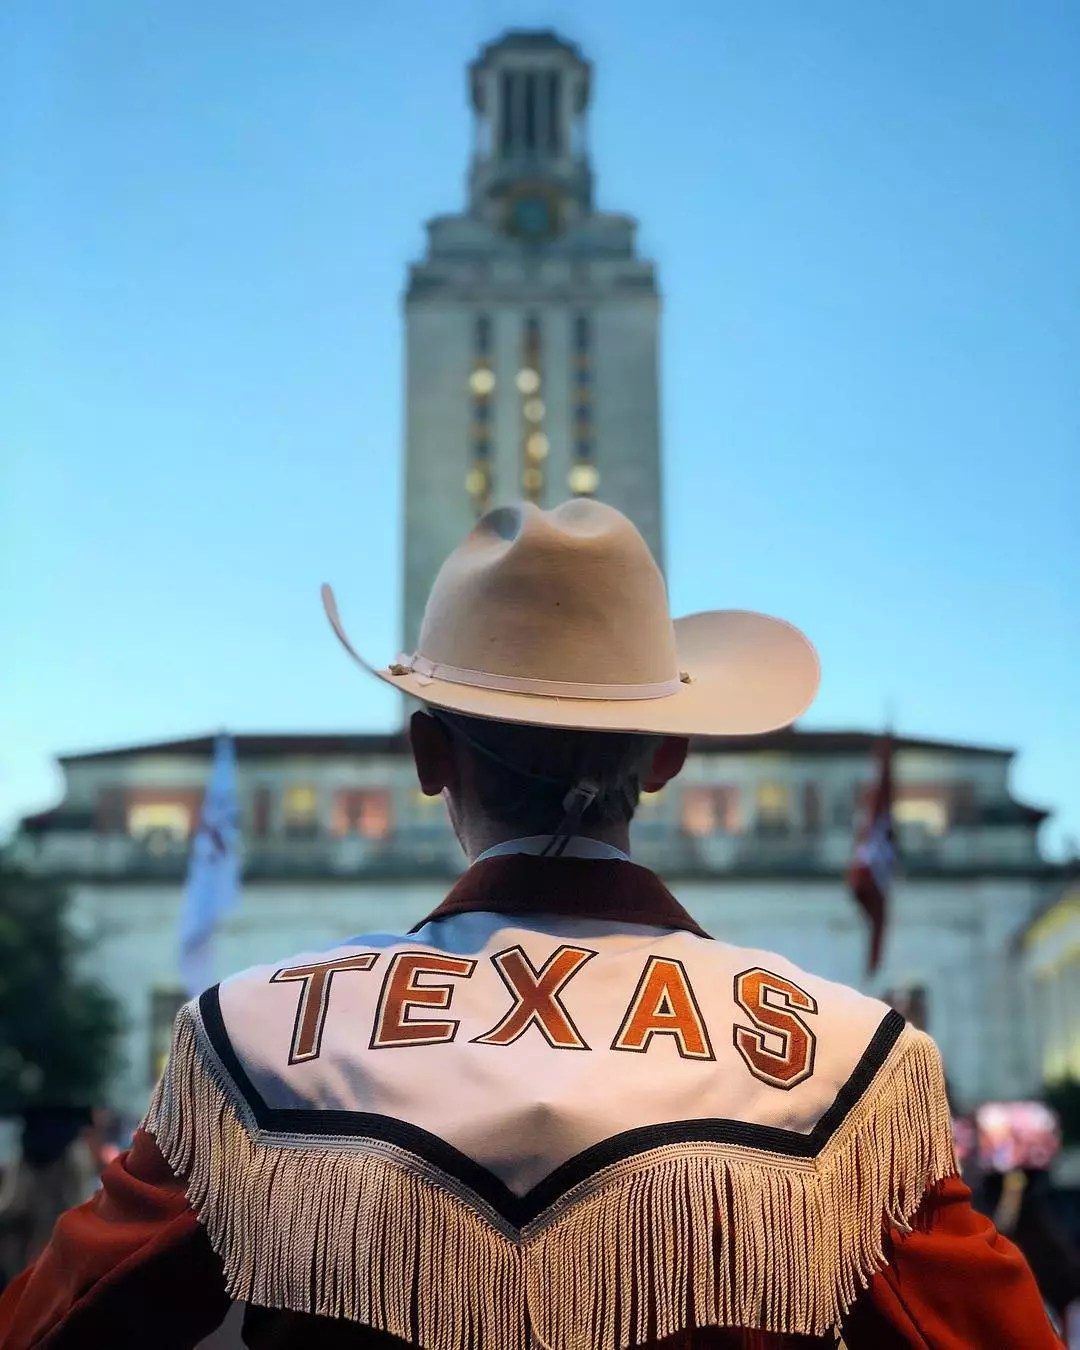 Member of UT band stands in front of UT Tower. Photo by Instagram user @utaustintx